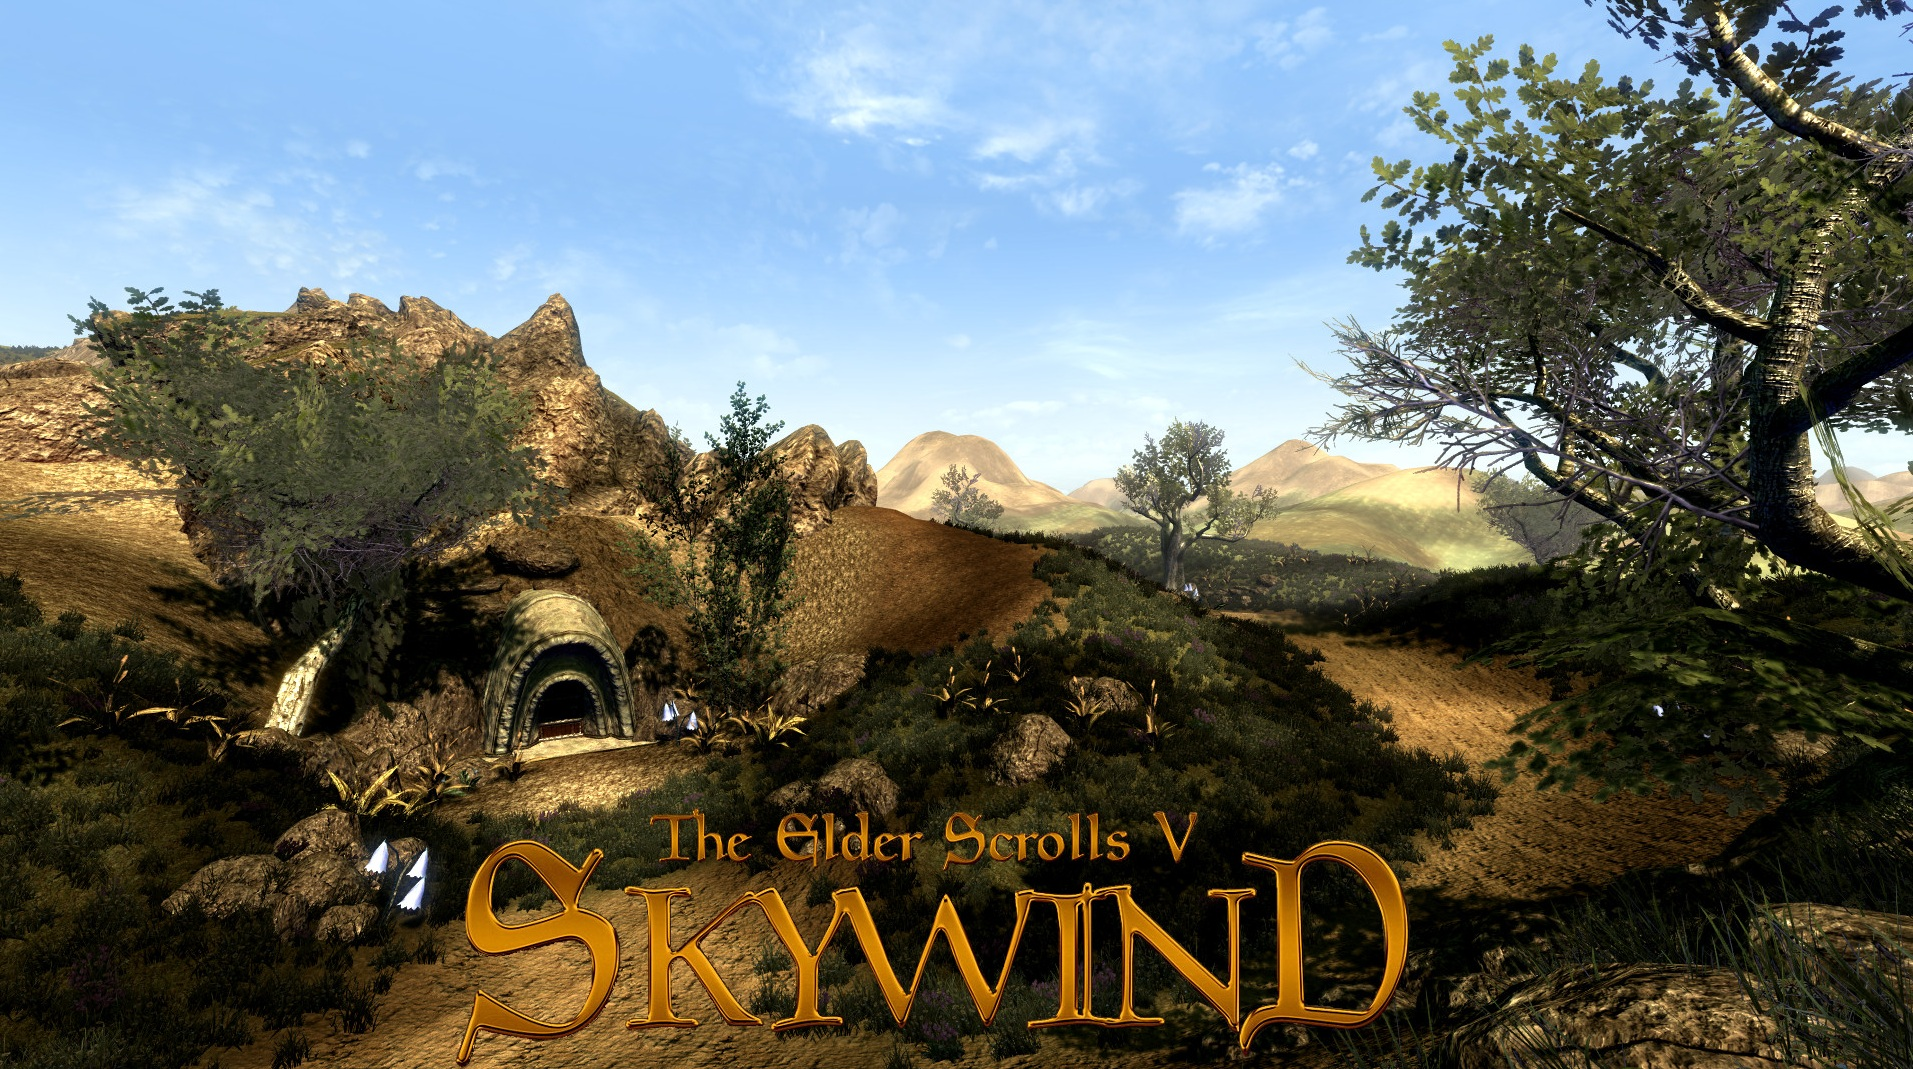 Wallpaper The Elder Scrolls V: Skywind